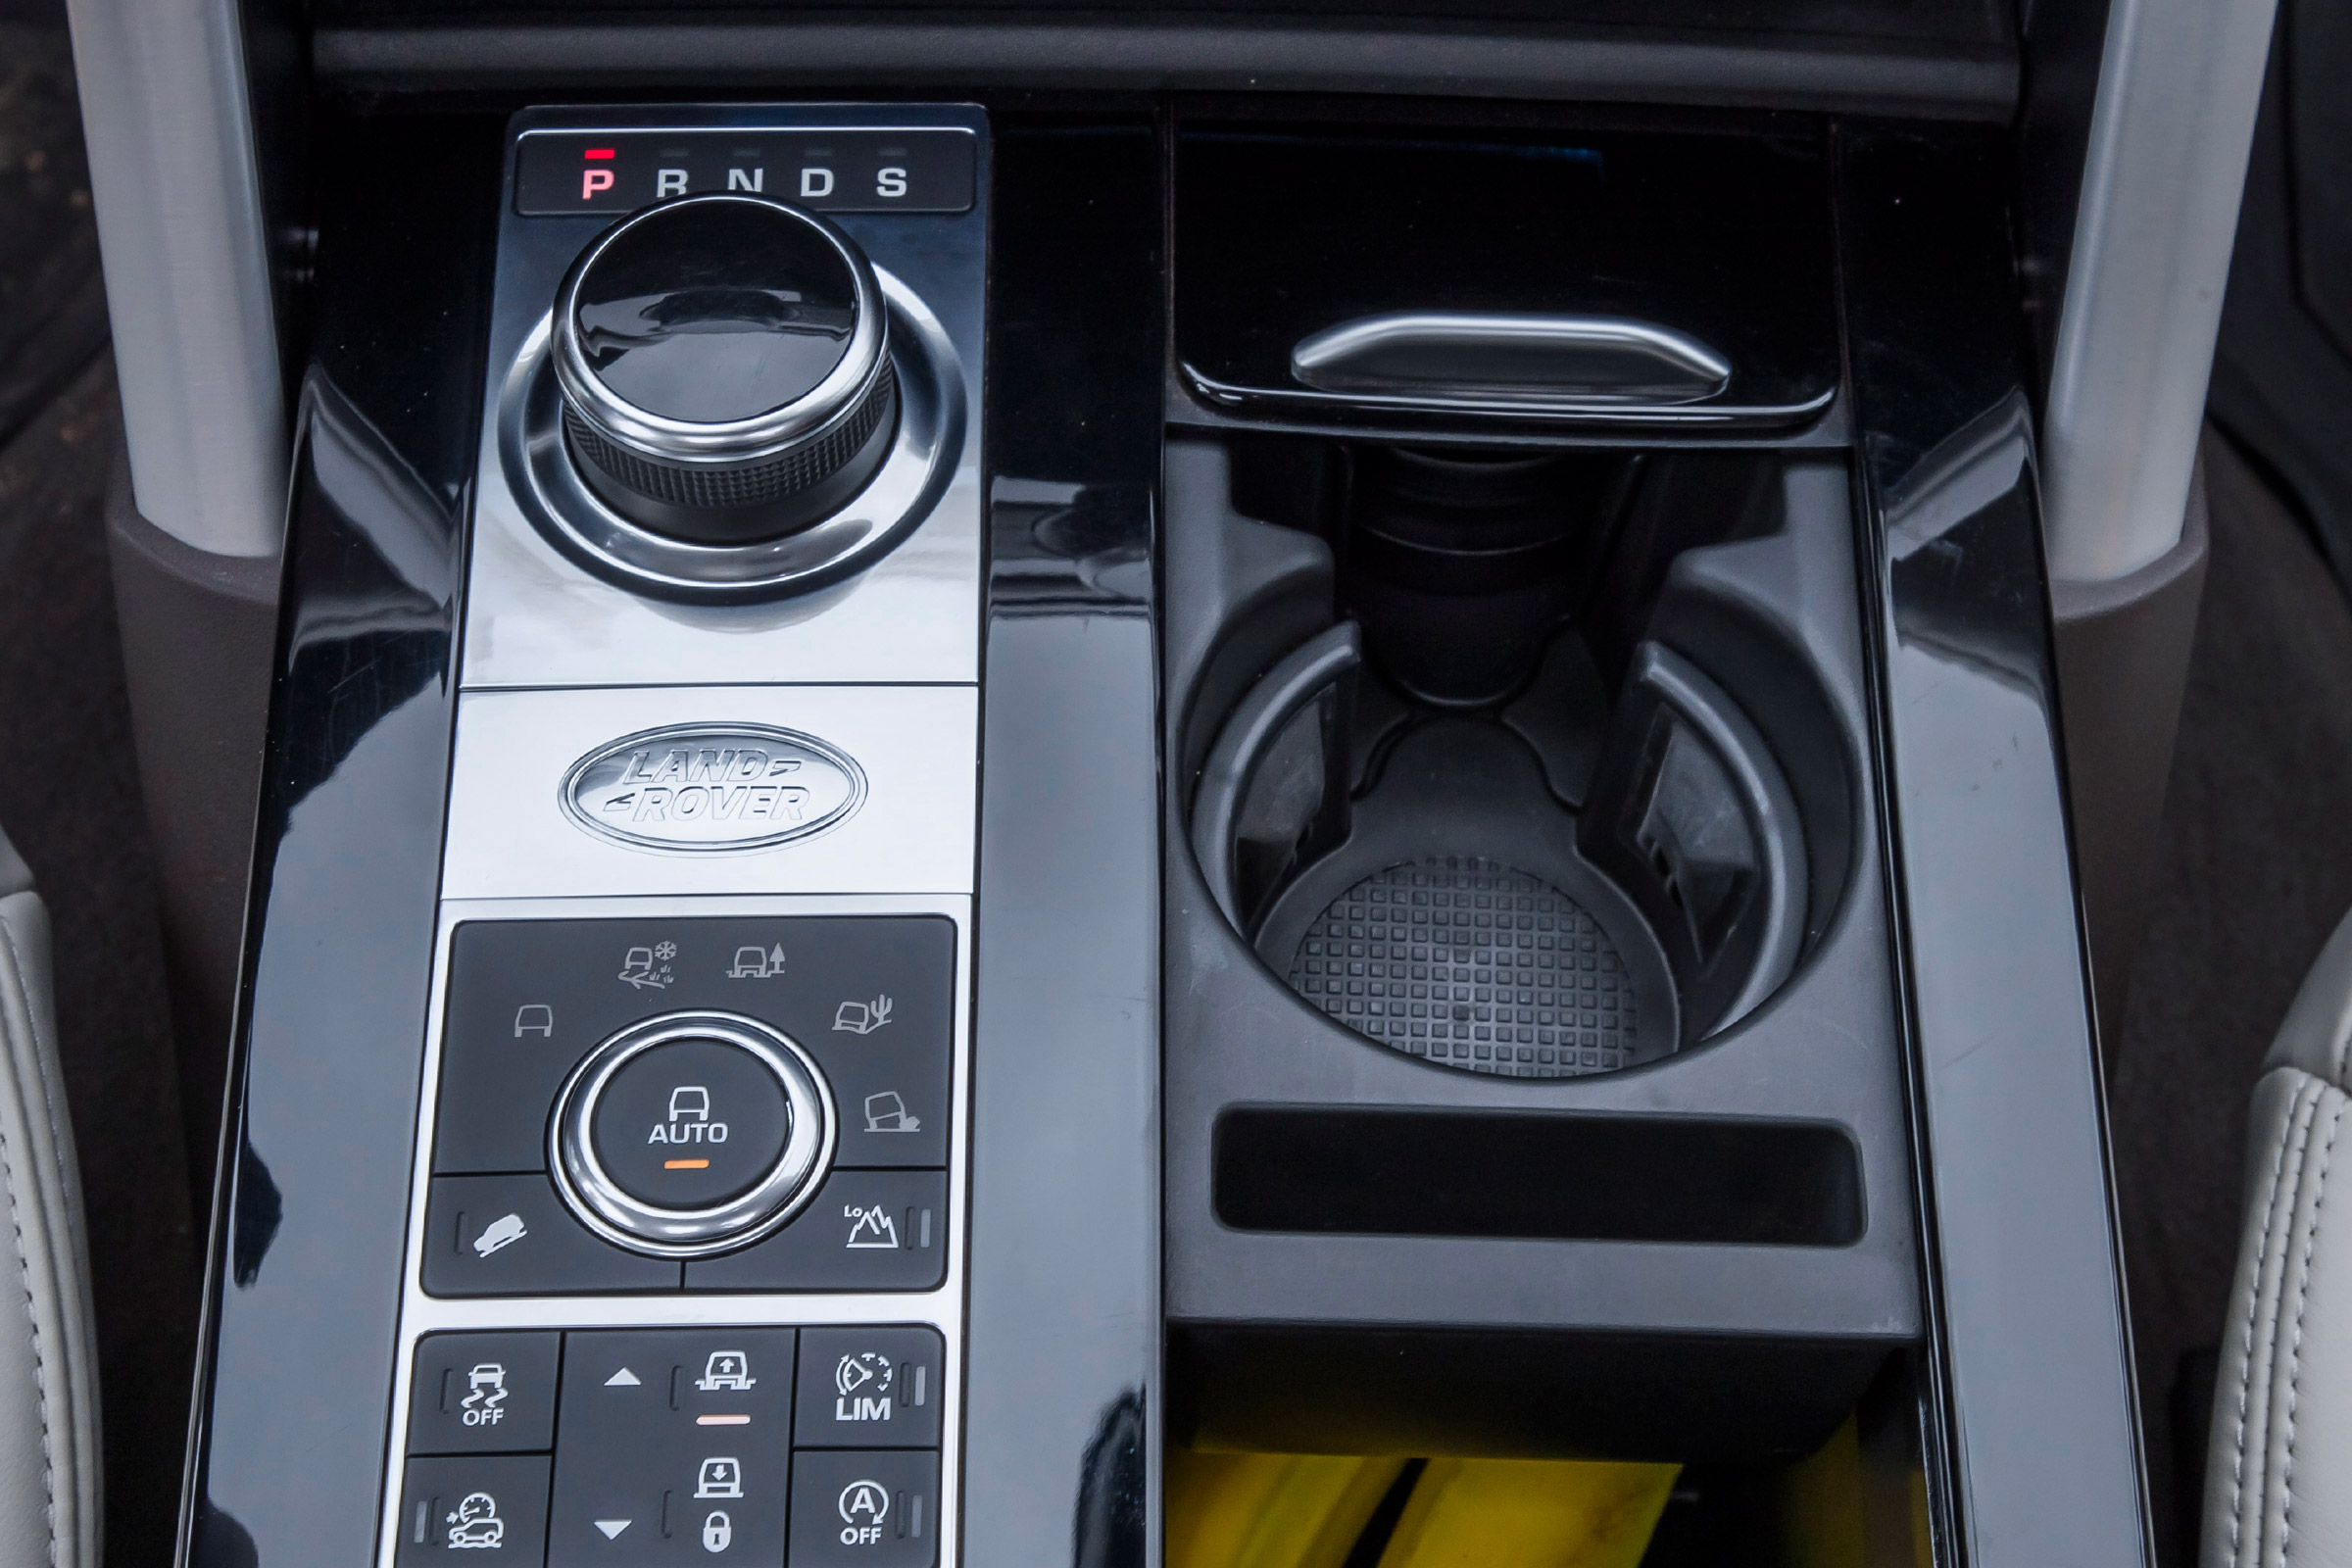 2017 Land Rover Discovery Interior View Gear Shifter And Center Console (Photo 12 of 17)